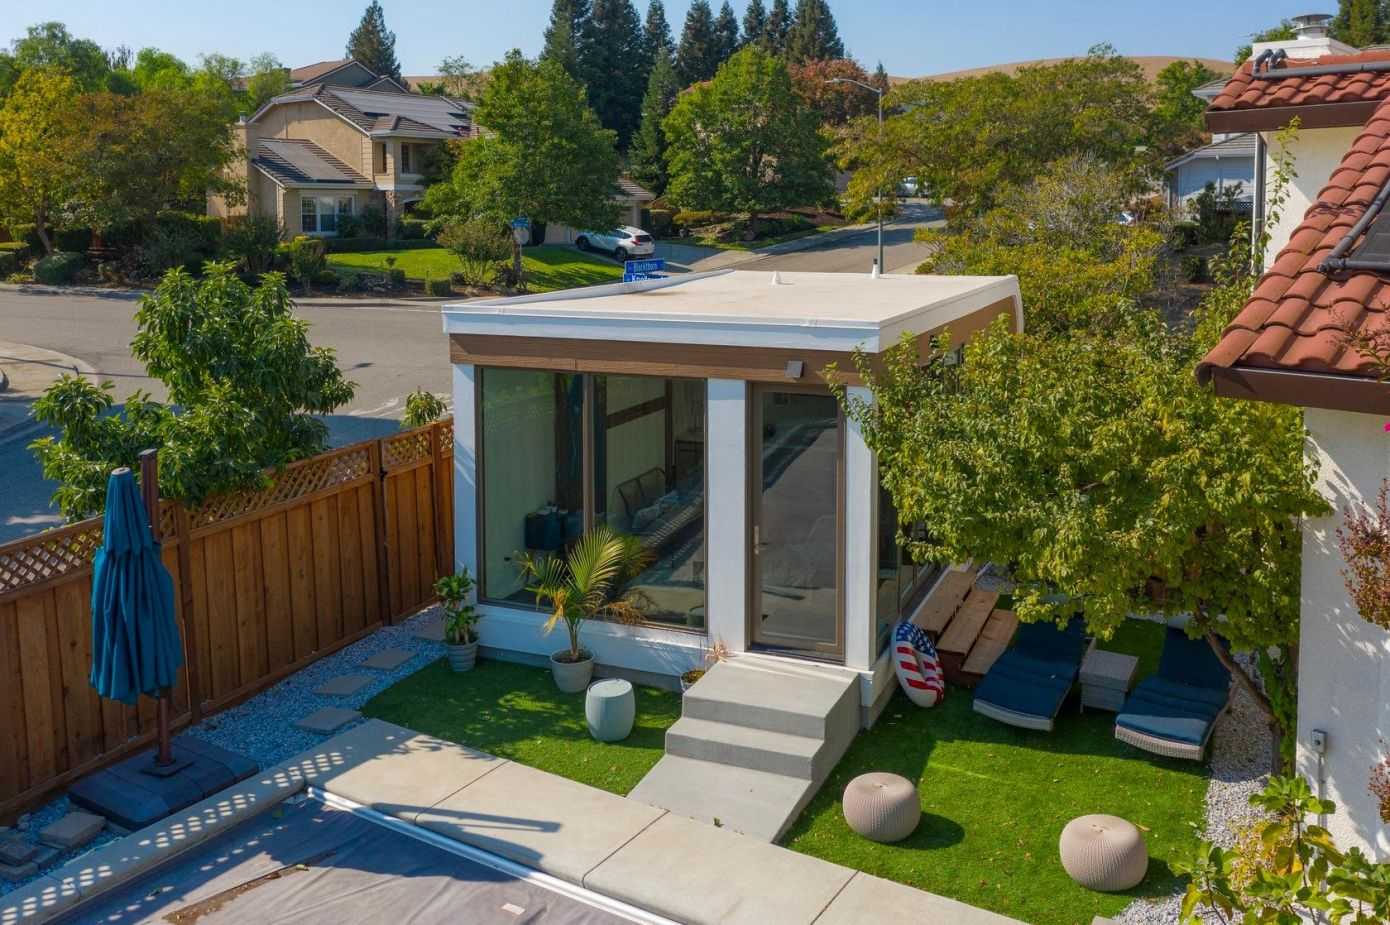 Mighty Buildings nabs $40M Series B to 3D print your next house